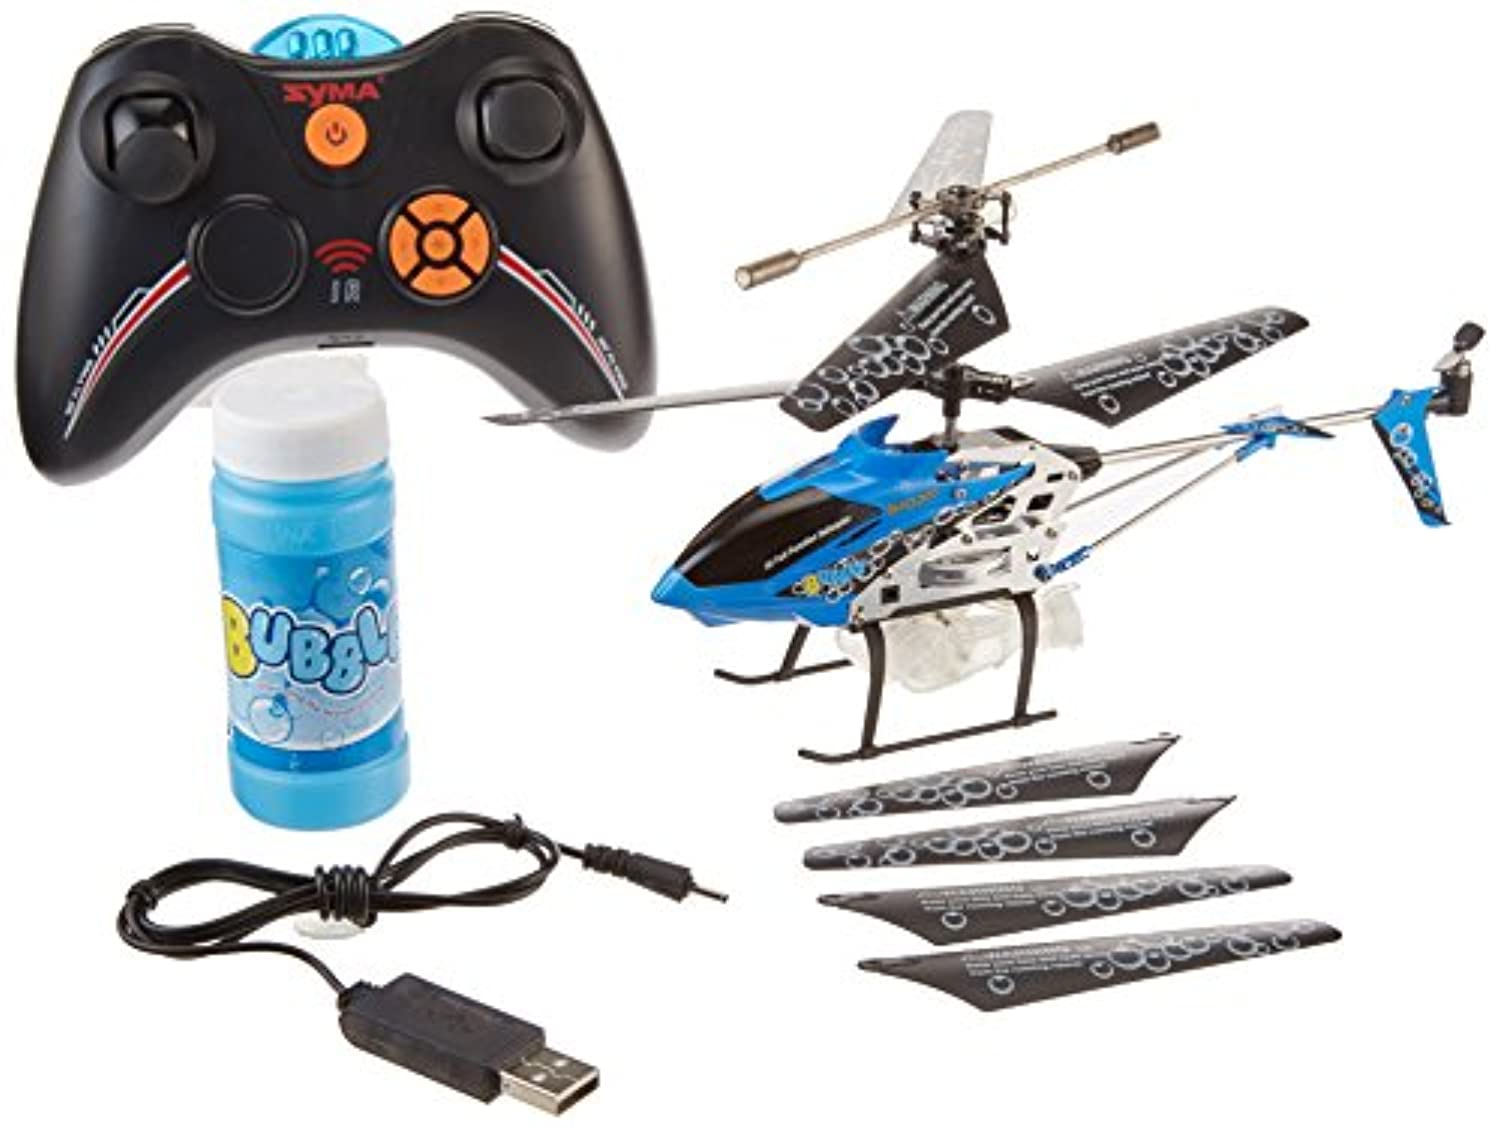 Syma 3 Channel S107p Bubble Blowing Helicopter Gyro 3 Channel with Light, Blue Color by Syma [並行輸入品]